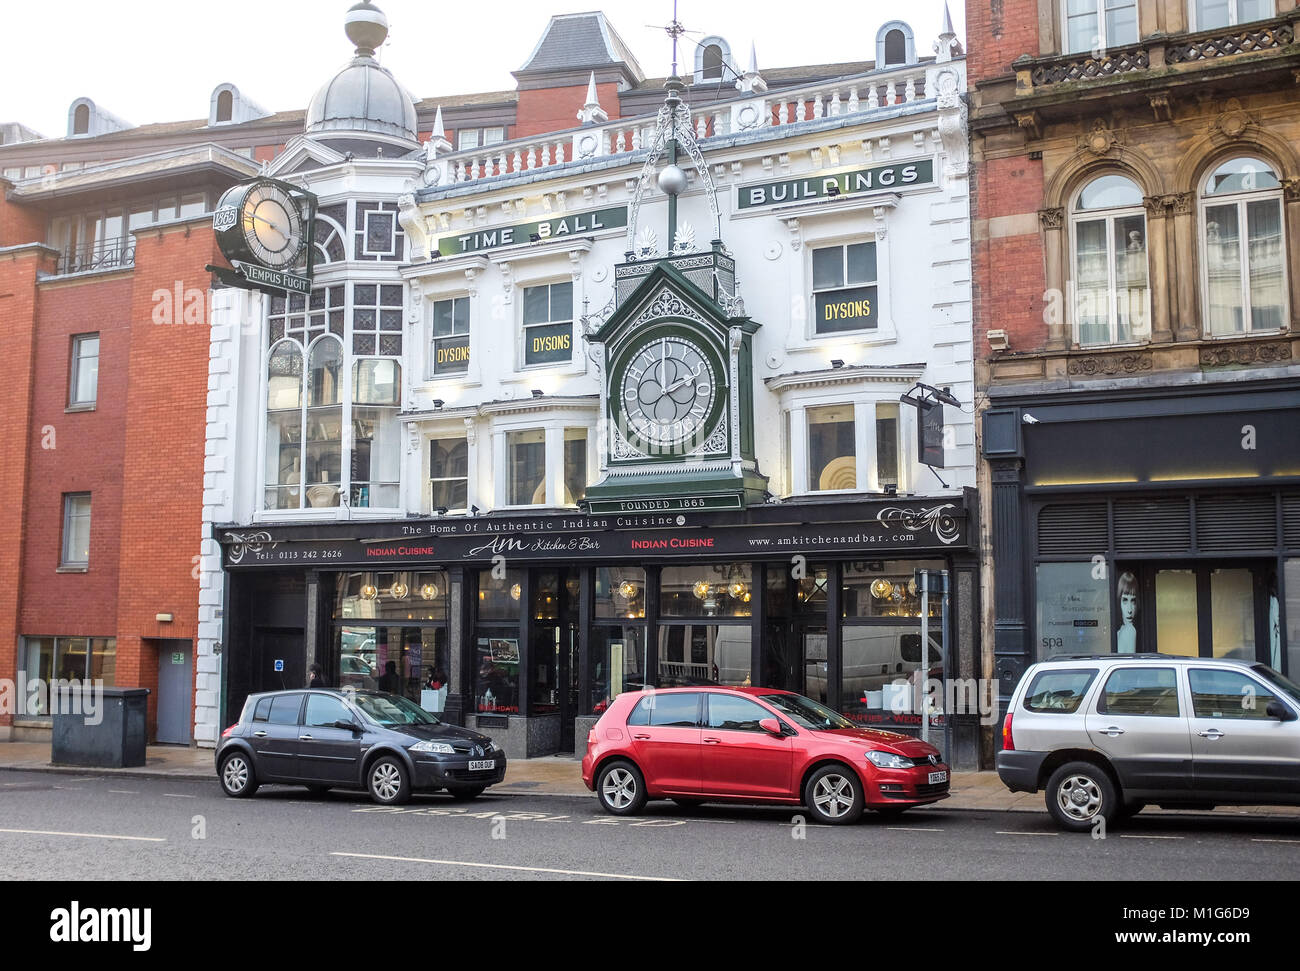 Leeds Yorkshire UK - The Dysons Time Ball Buildings   On the top and front of his premises are two large electric - Stock Image